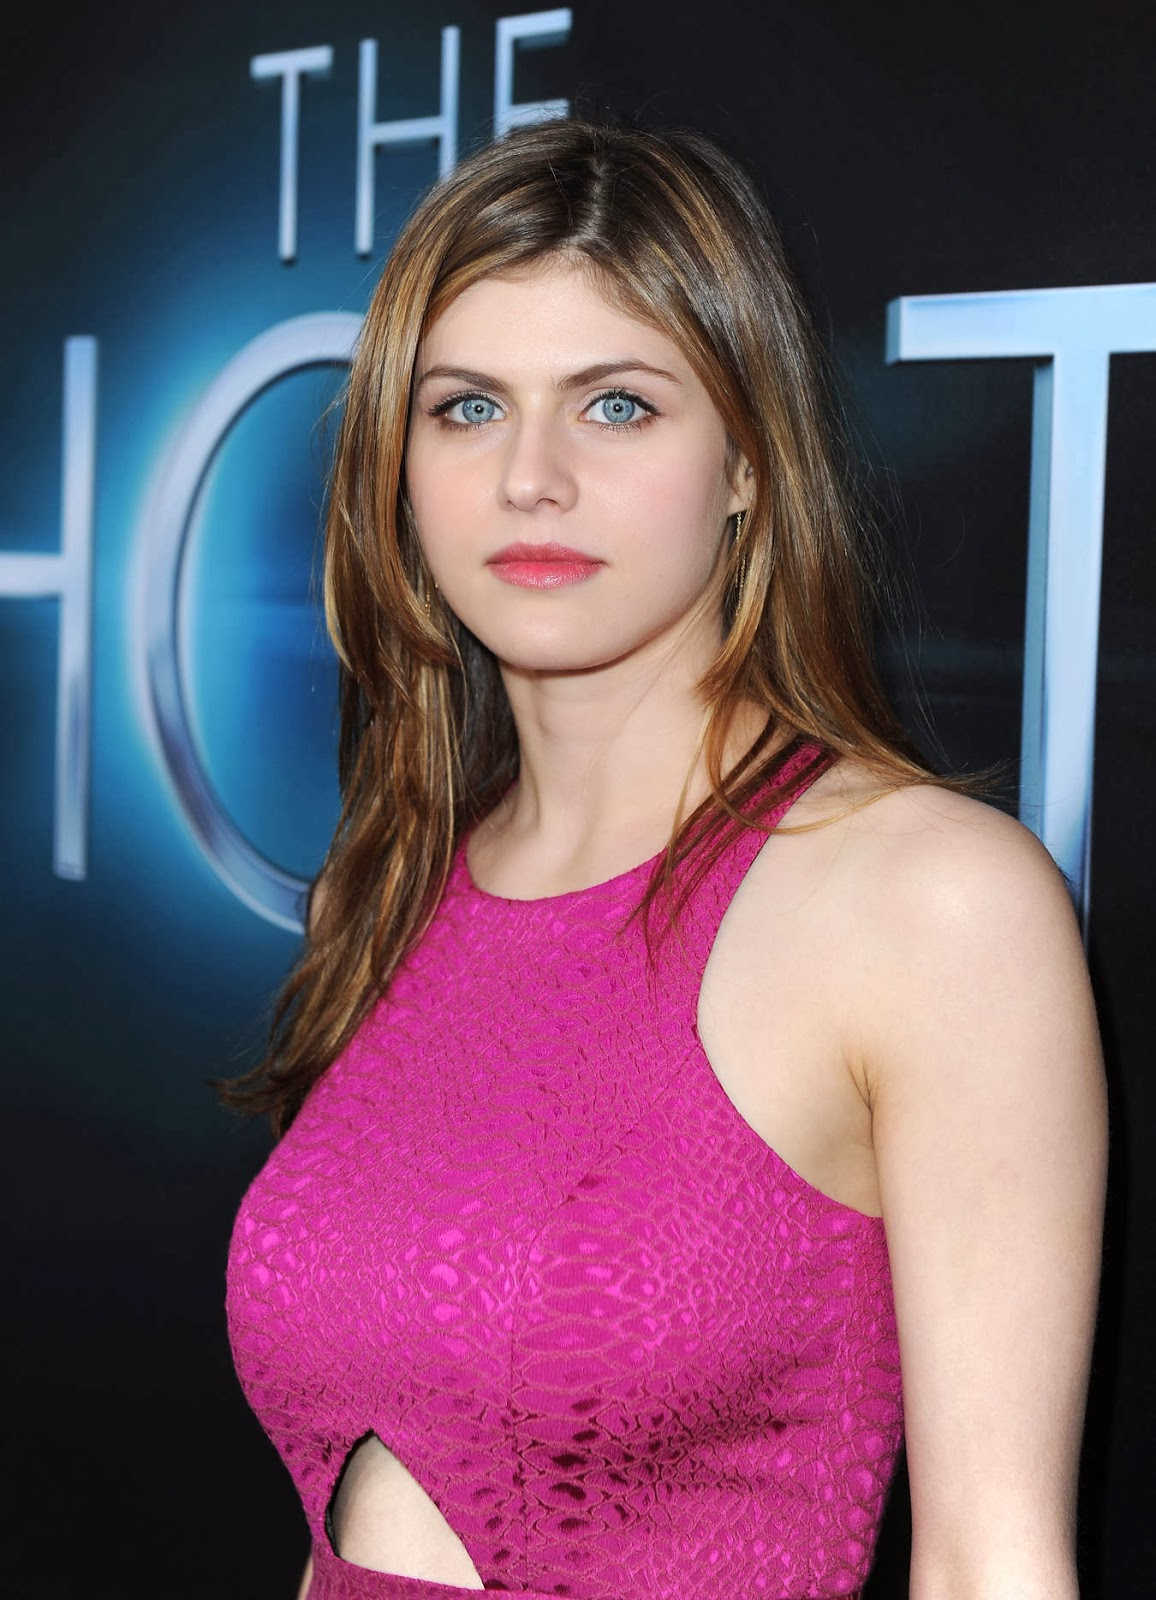 HD Wallpapers Blog Provides Wide Alexandra Daddario We Select A List Of The Best Pictures Download Free